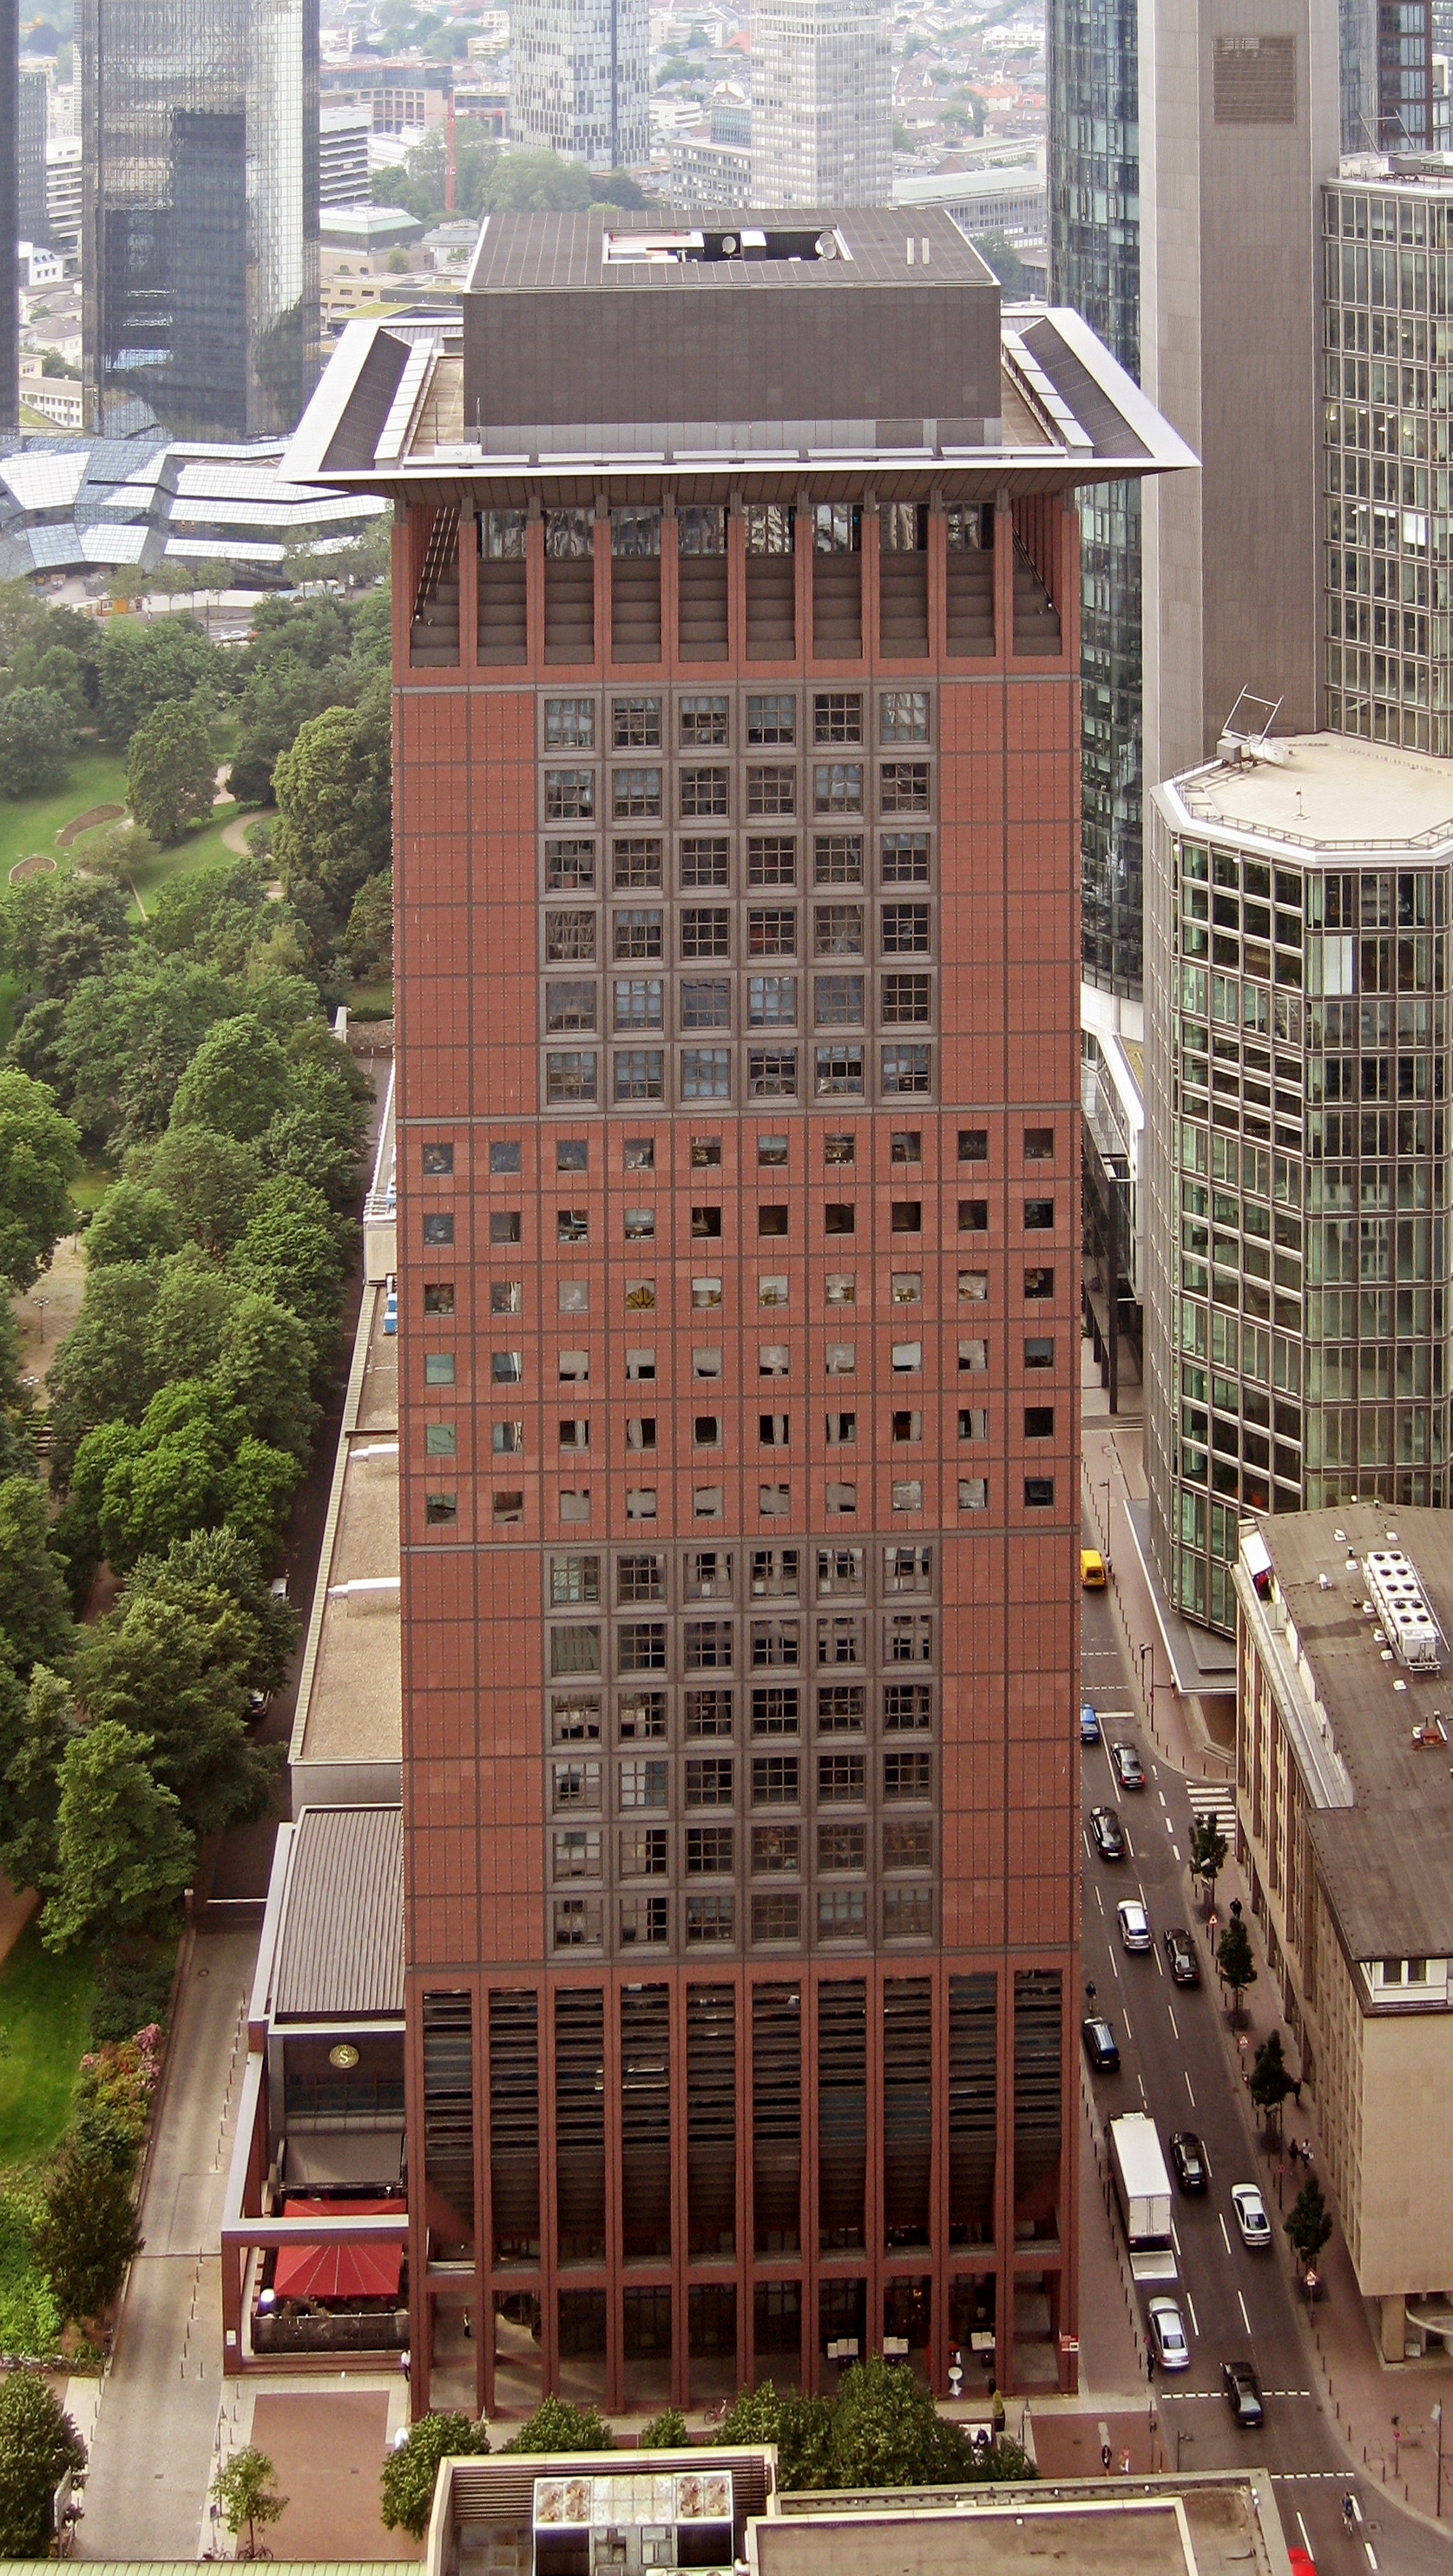 https://upload.wikimedia.org/wikipedia/commons/0/0b/Frankfurt_Main_Japan_Tower_6240a.jpg